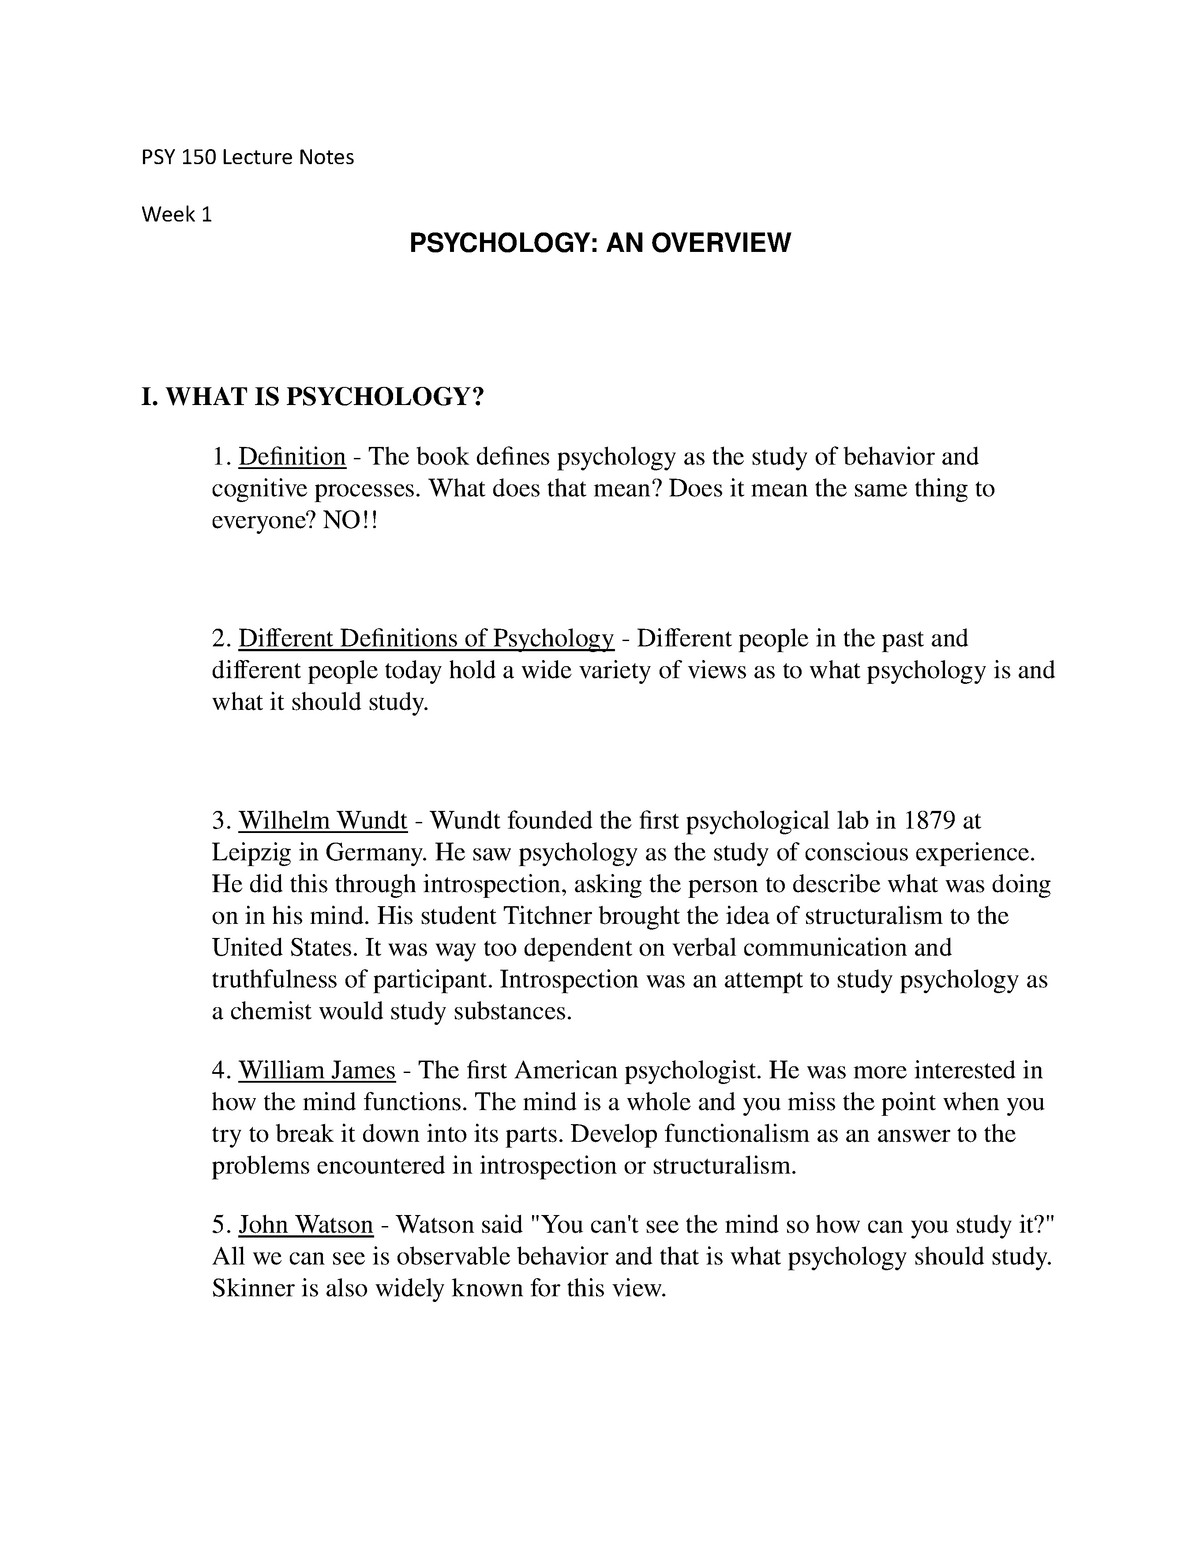 PSY 150 Lecture Notes - PSY 150: Introduction to Psychology - StuDocu